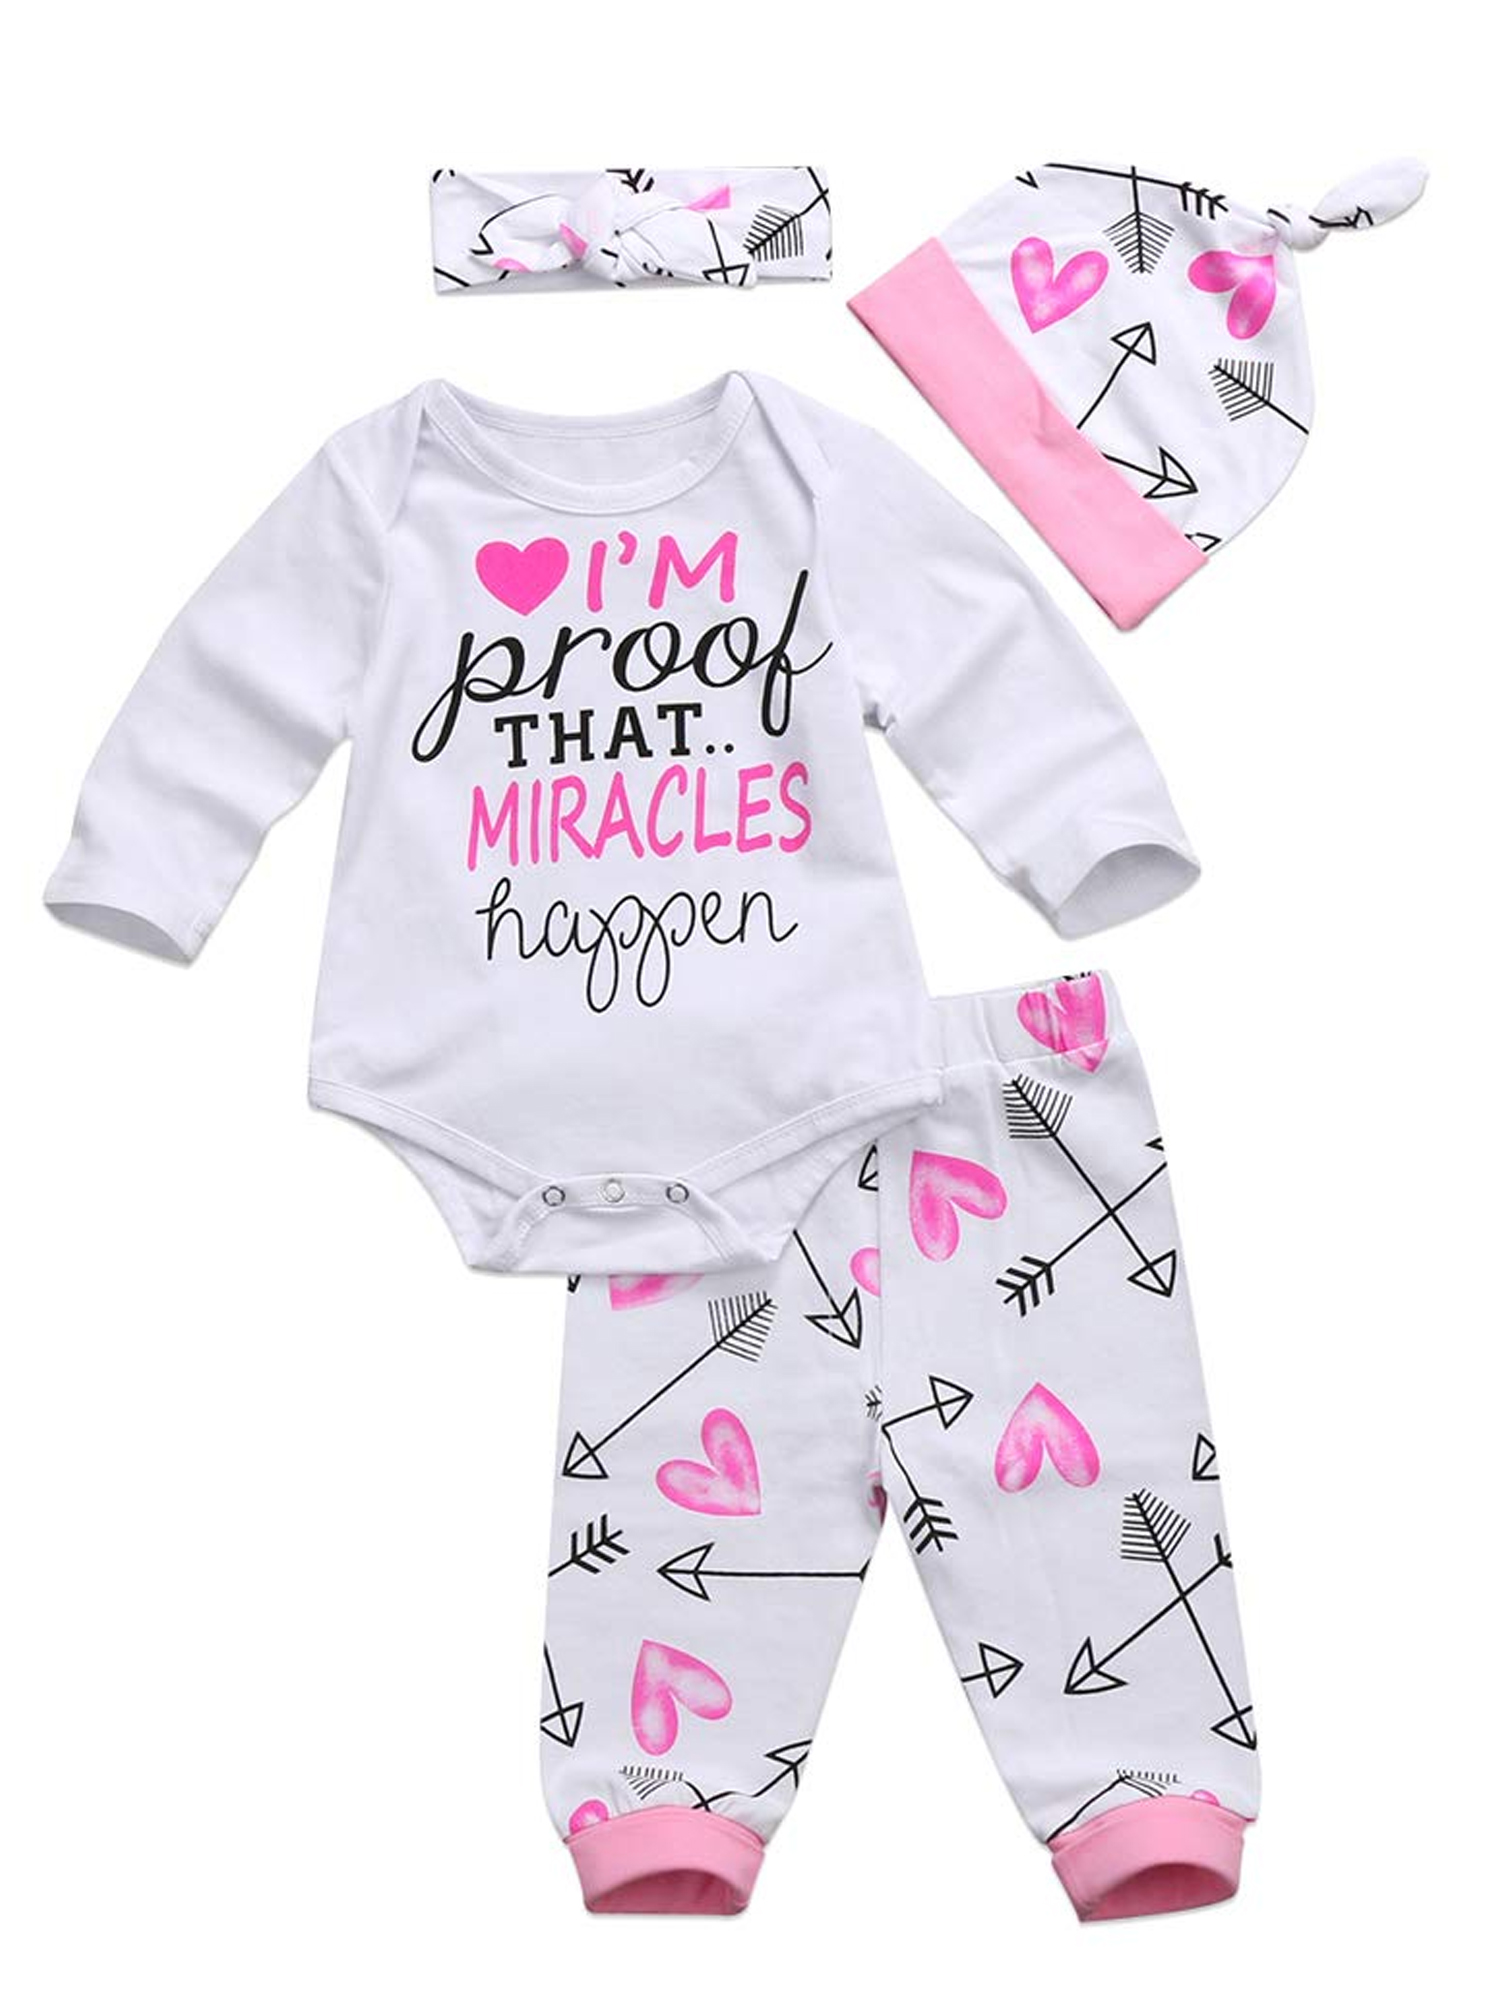 Hat+Headband Memela Baby Clothes,4 Pcs Newborn Baby Girls Clothes Miracles Letter Romper Outfit Pants Set